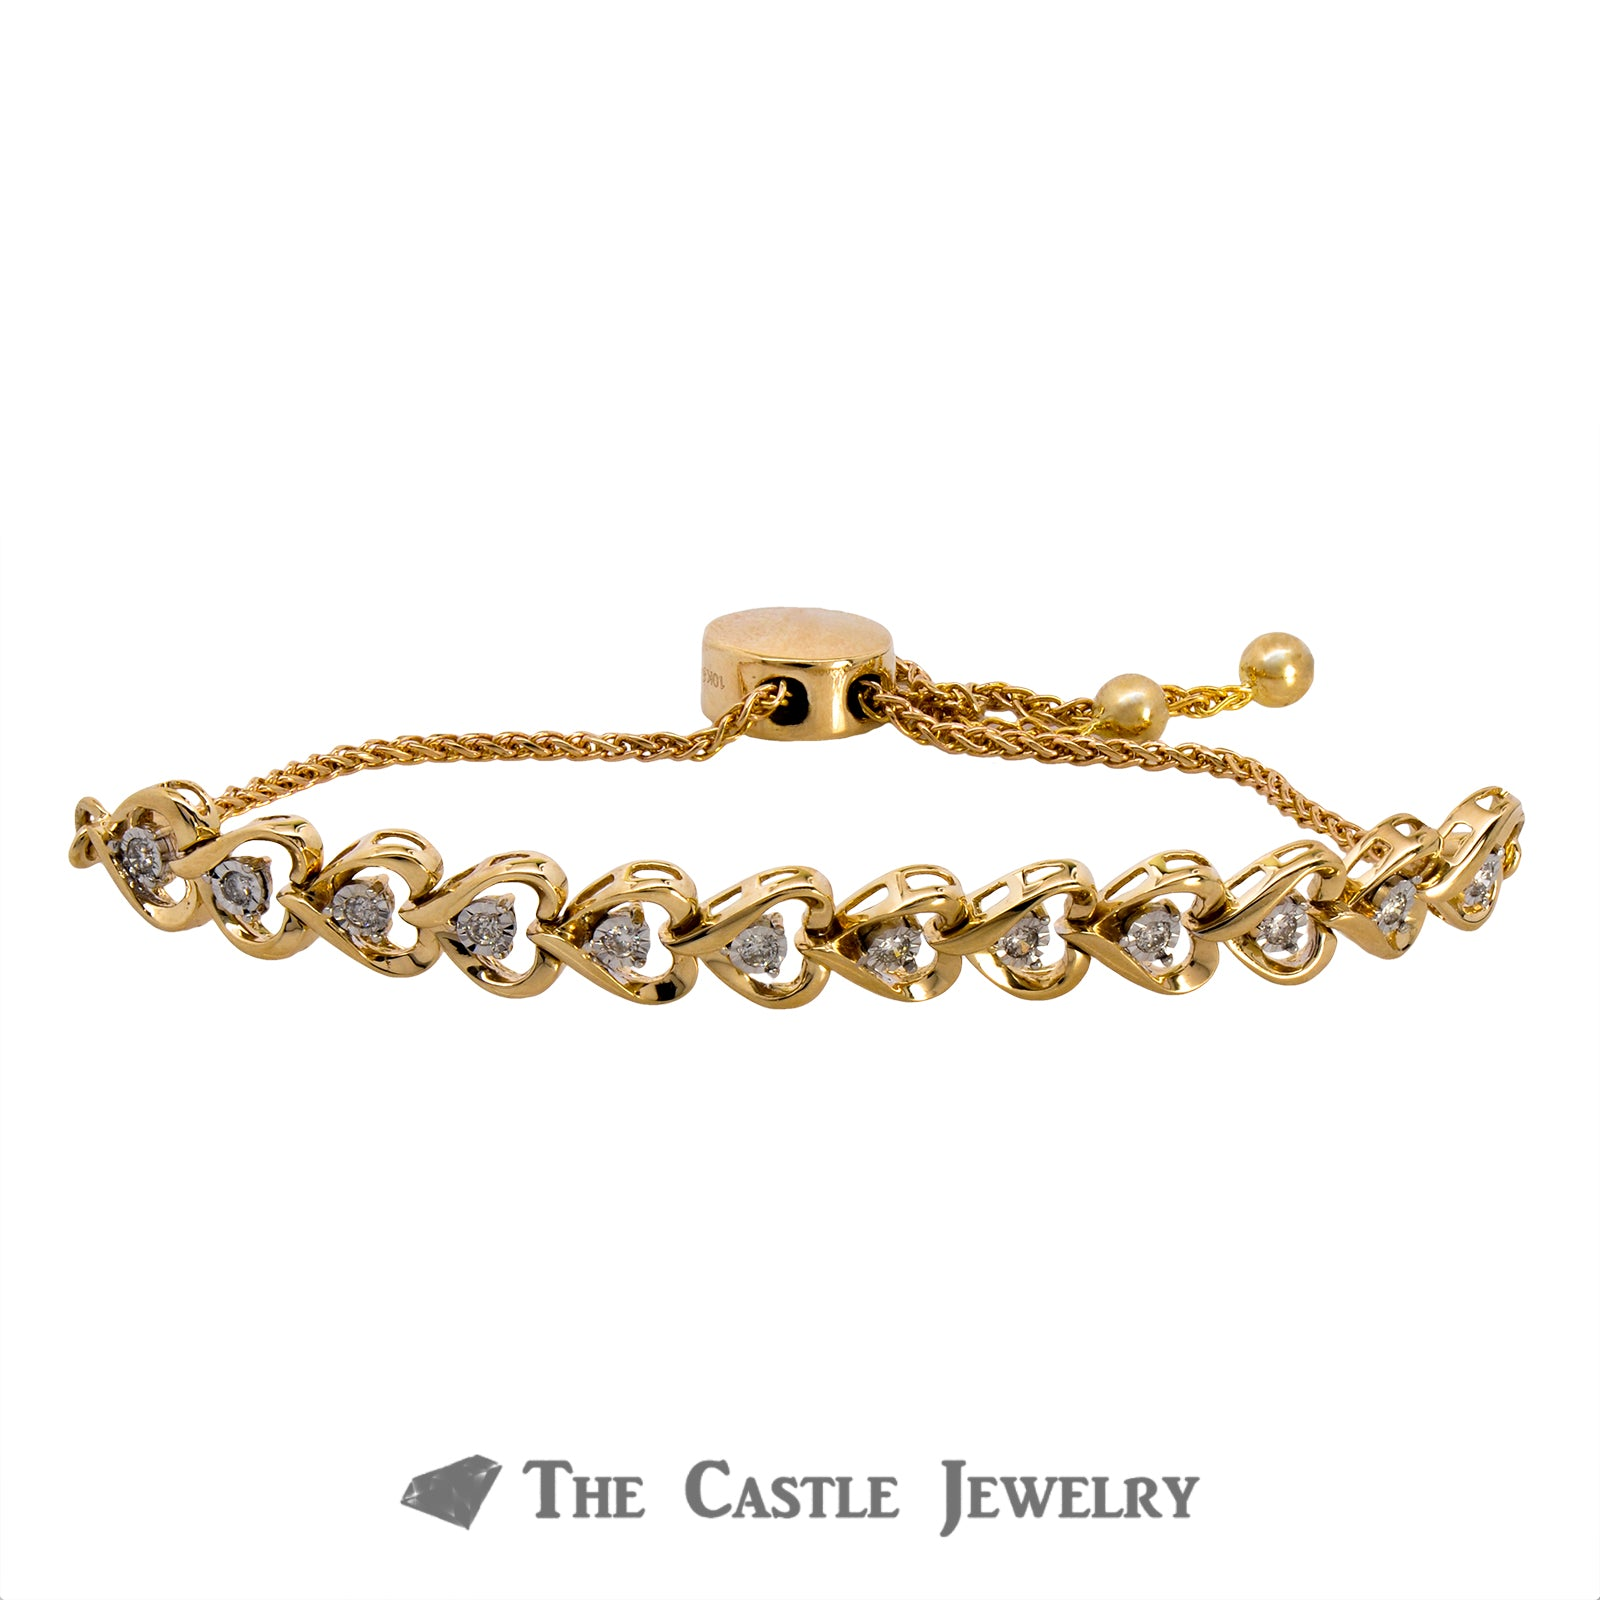 Adjustable Diamond Heart Design Bracelet  Crafted in 10K Yellow Gold-1